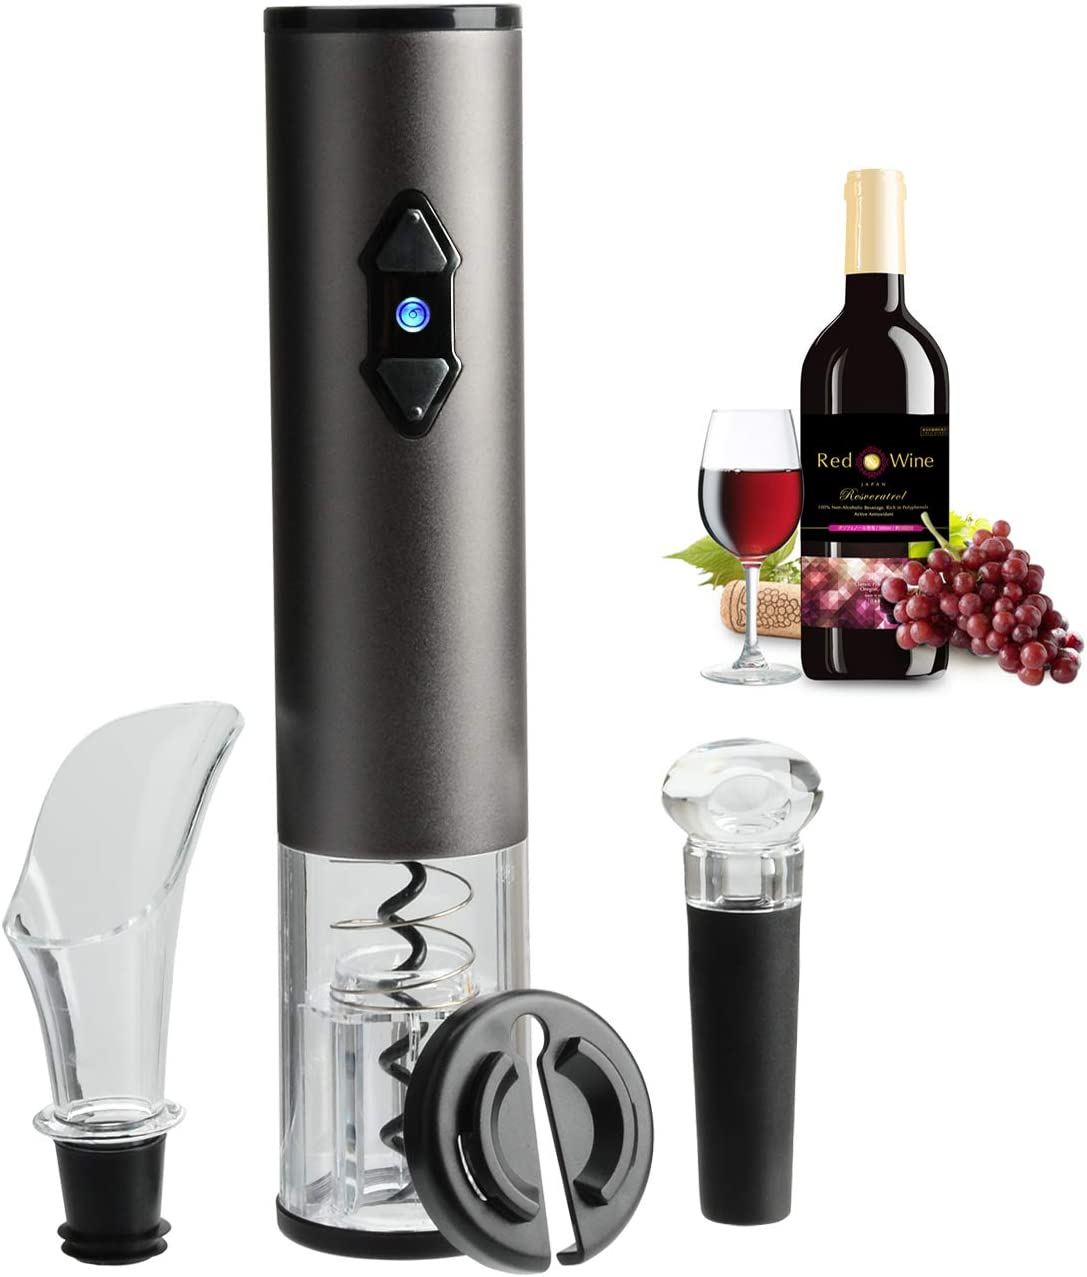 Electric Wine Opener, Rechargeable Automatic Corkscrew Wine Bottle Opener Stainless Steel with Foil Cutter Wine Pourer Vacuum Stopper Charger